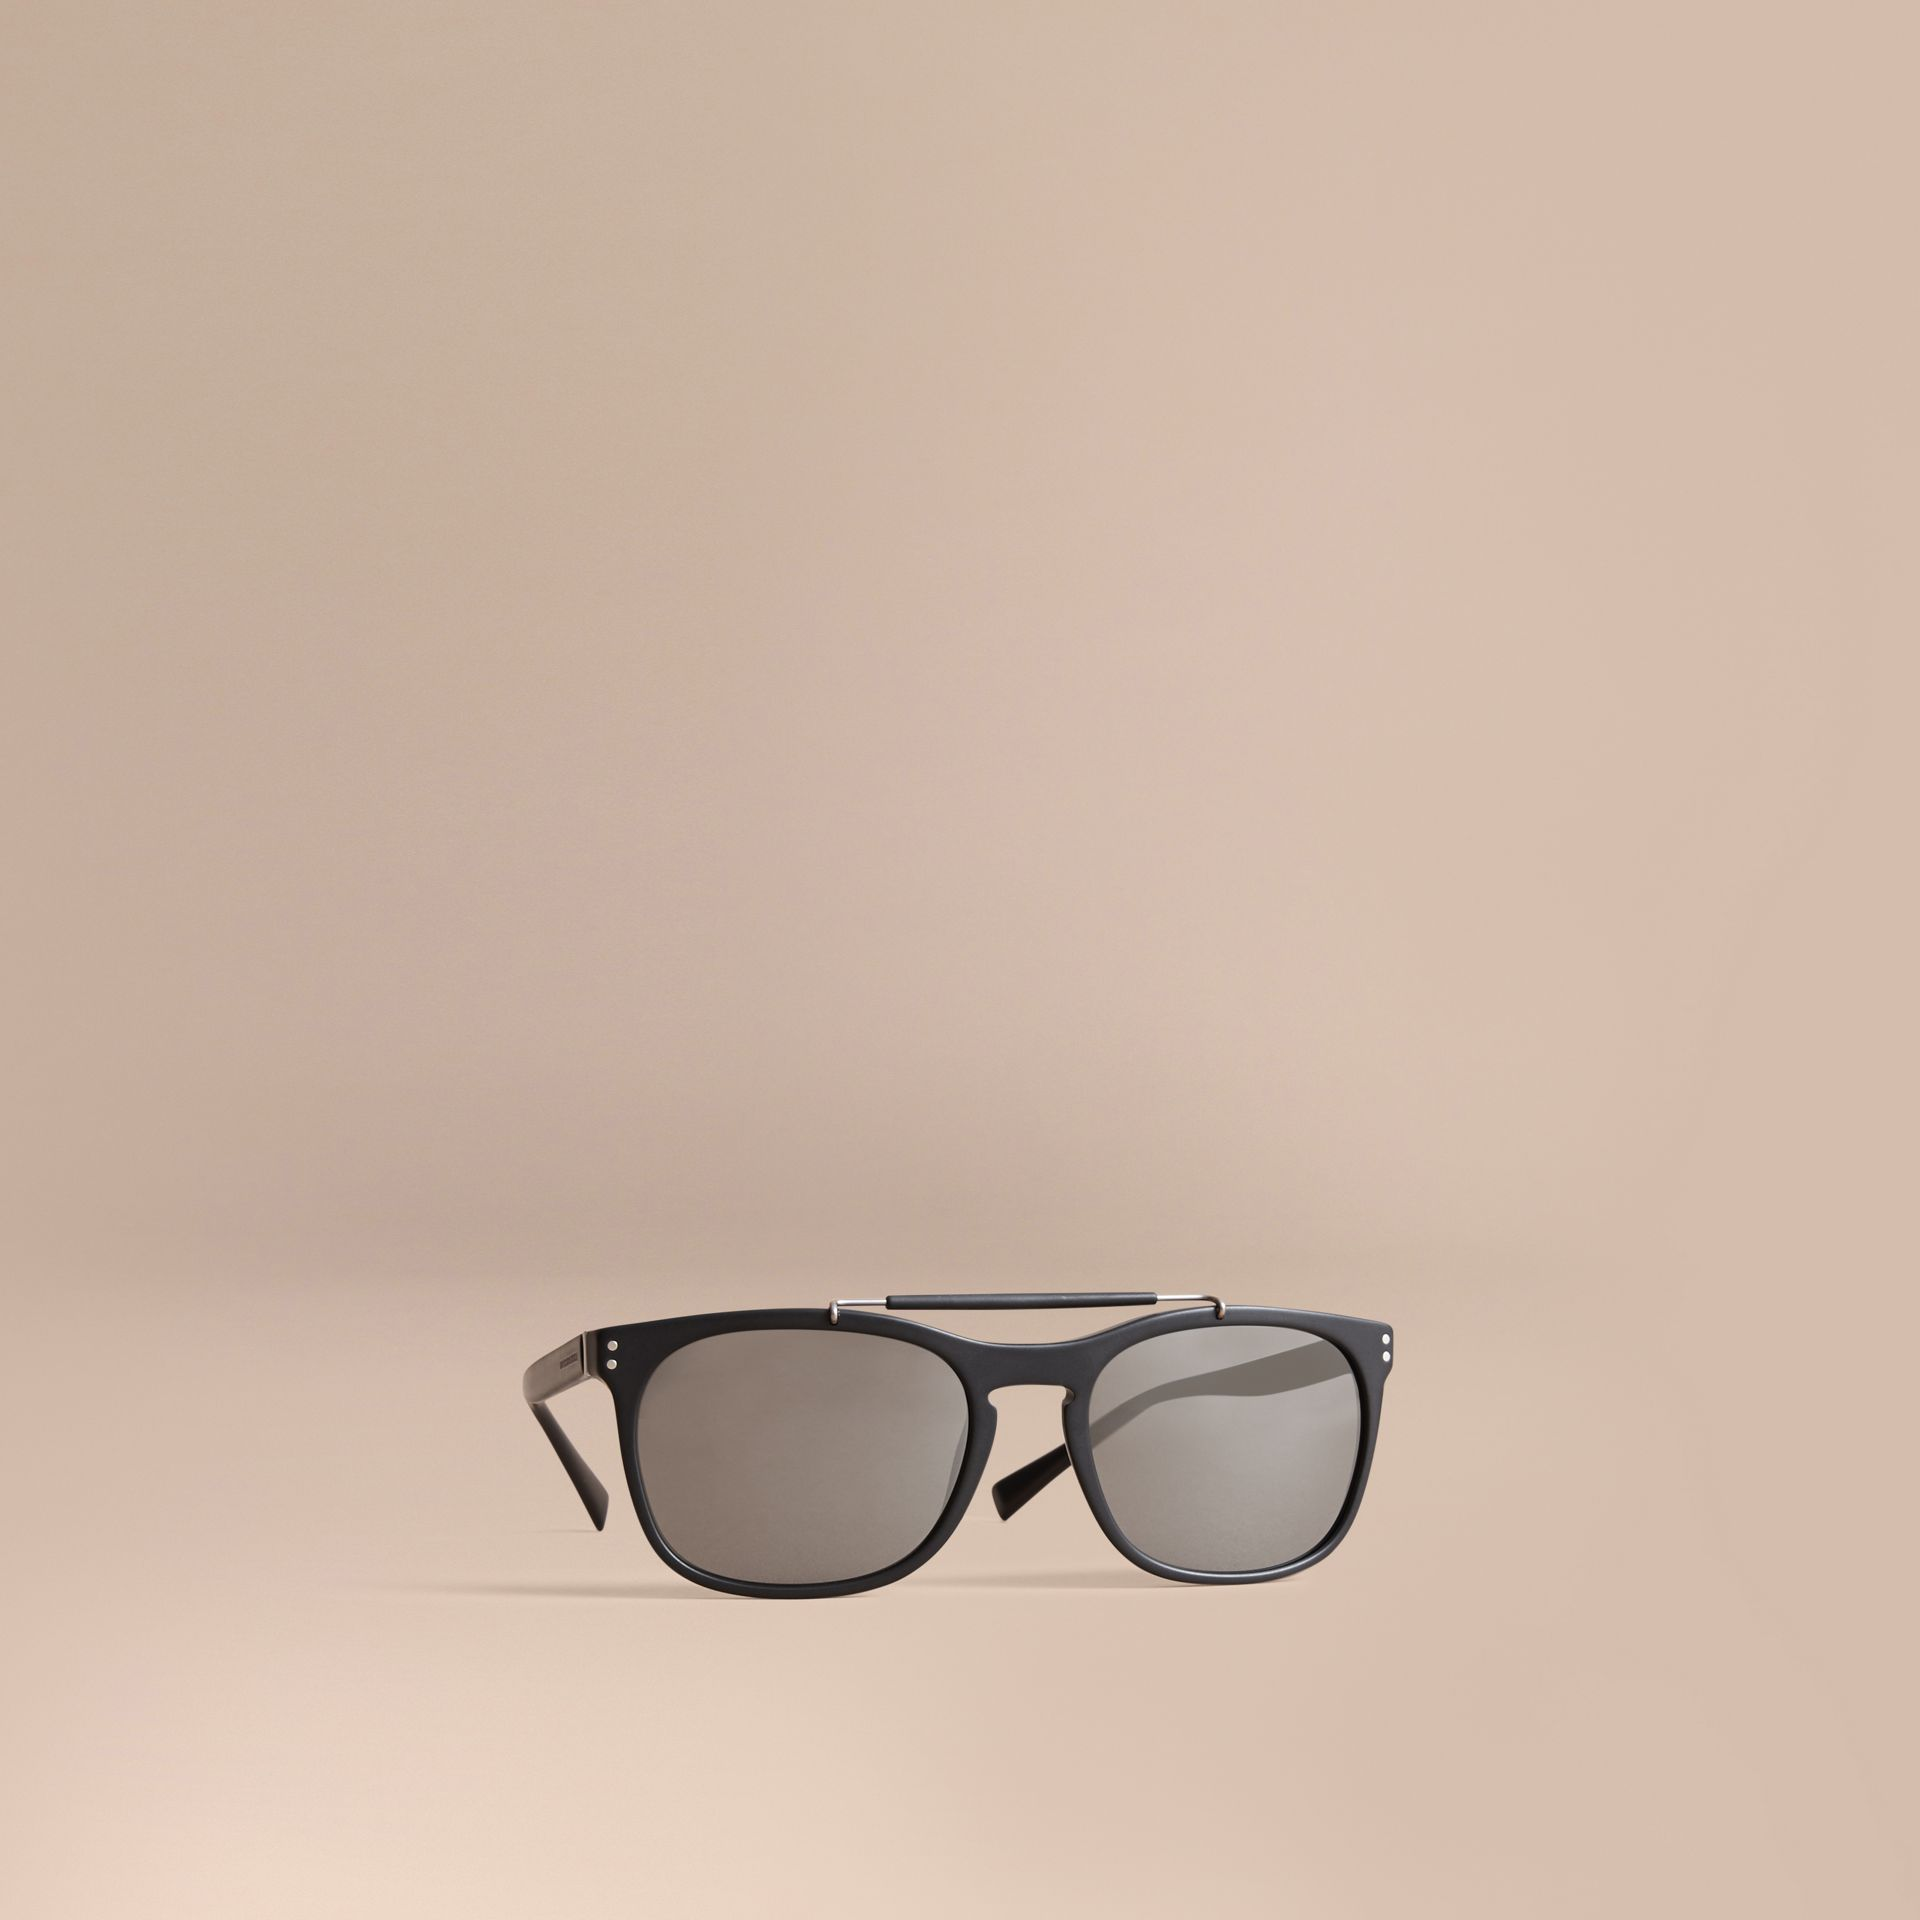 Top Bar Square Frame Sunglasses in Black - Men | Burberry - gallery image 1